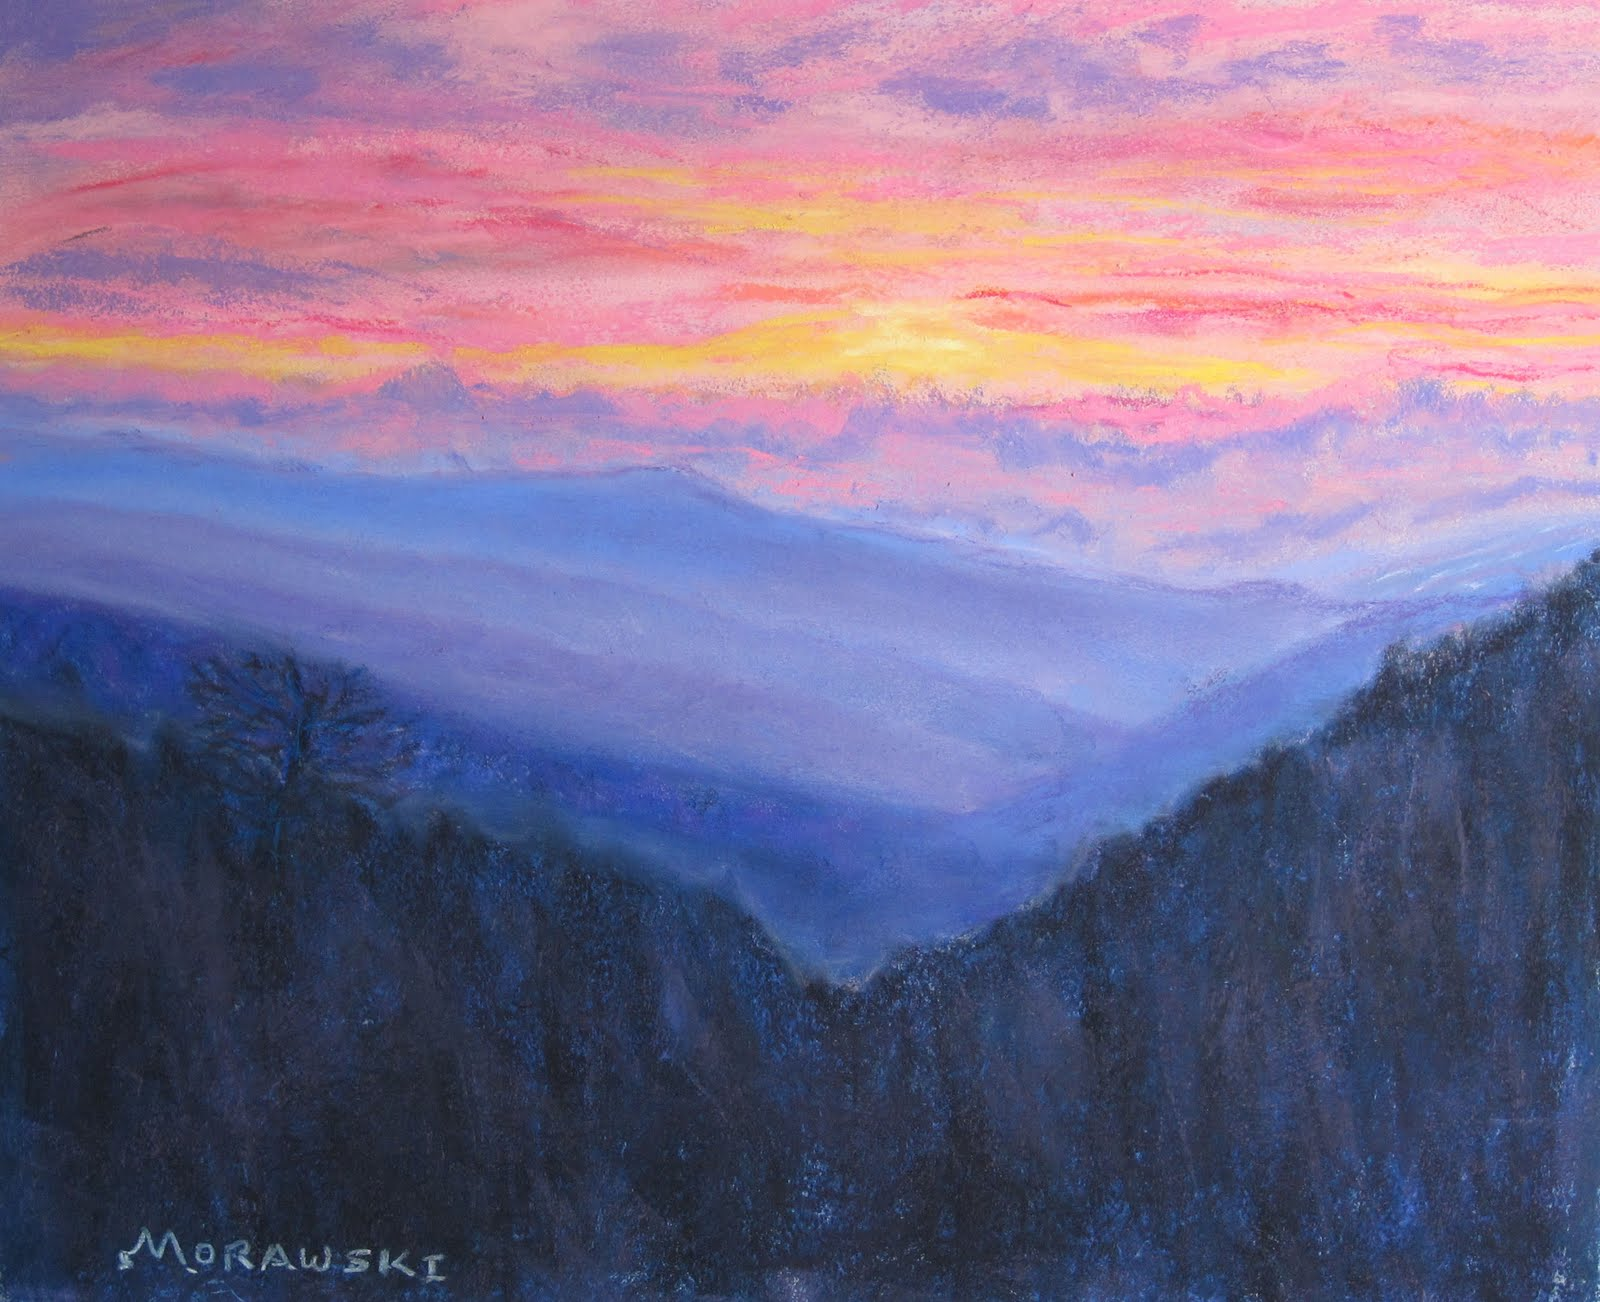 Seasons New Mountain Landscape QuotSmoky Mountain Retreatquot